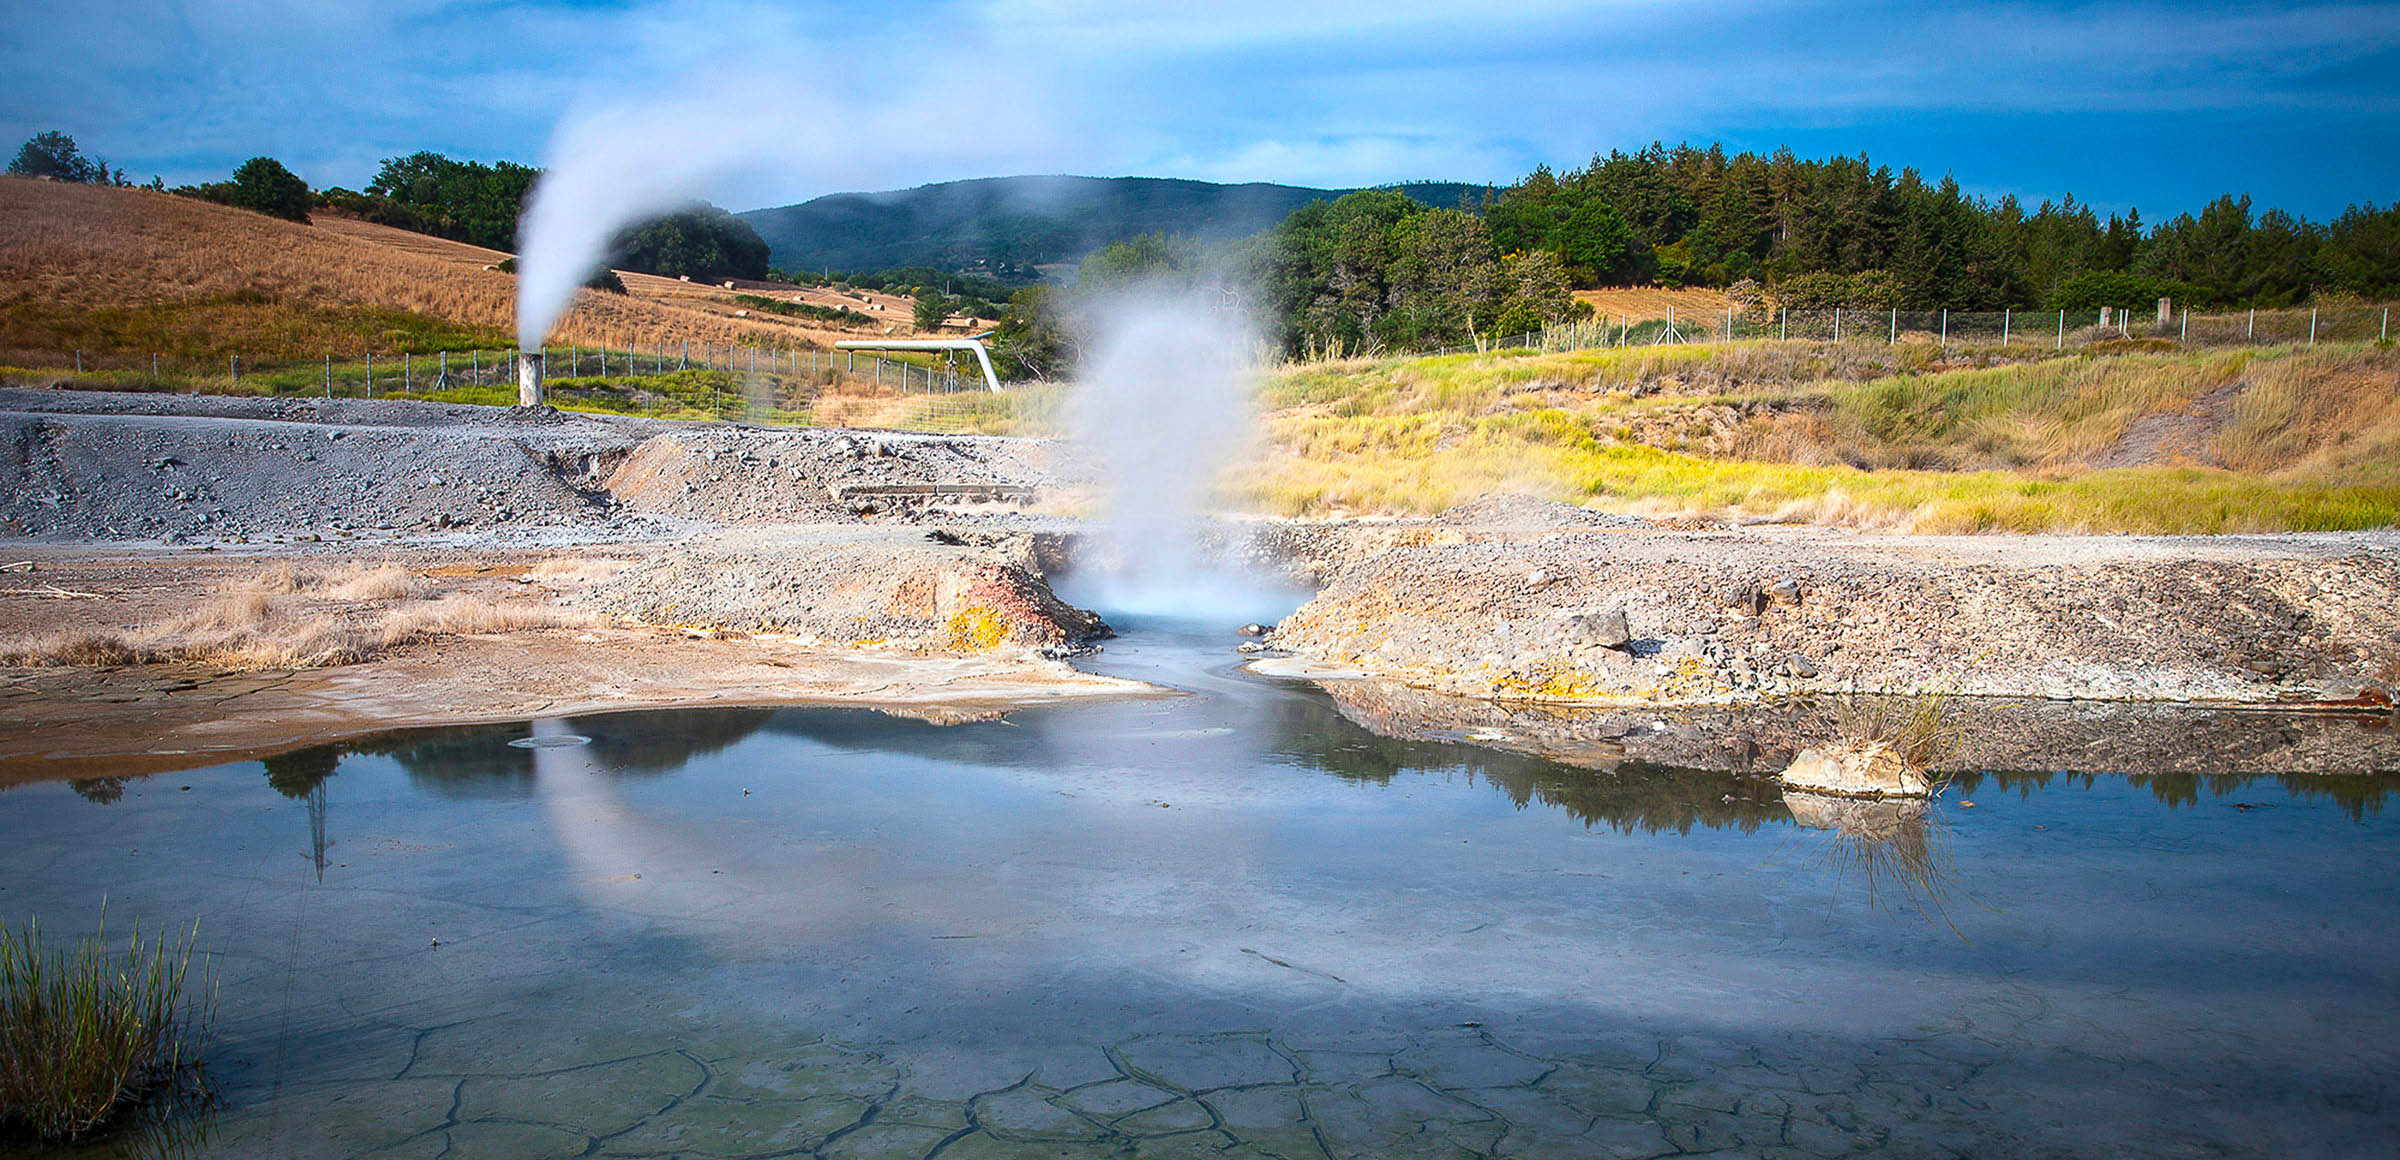 A geothermal power plant in Italy. Photo via Enel Green Power.